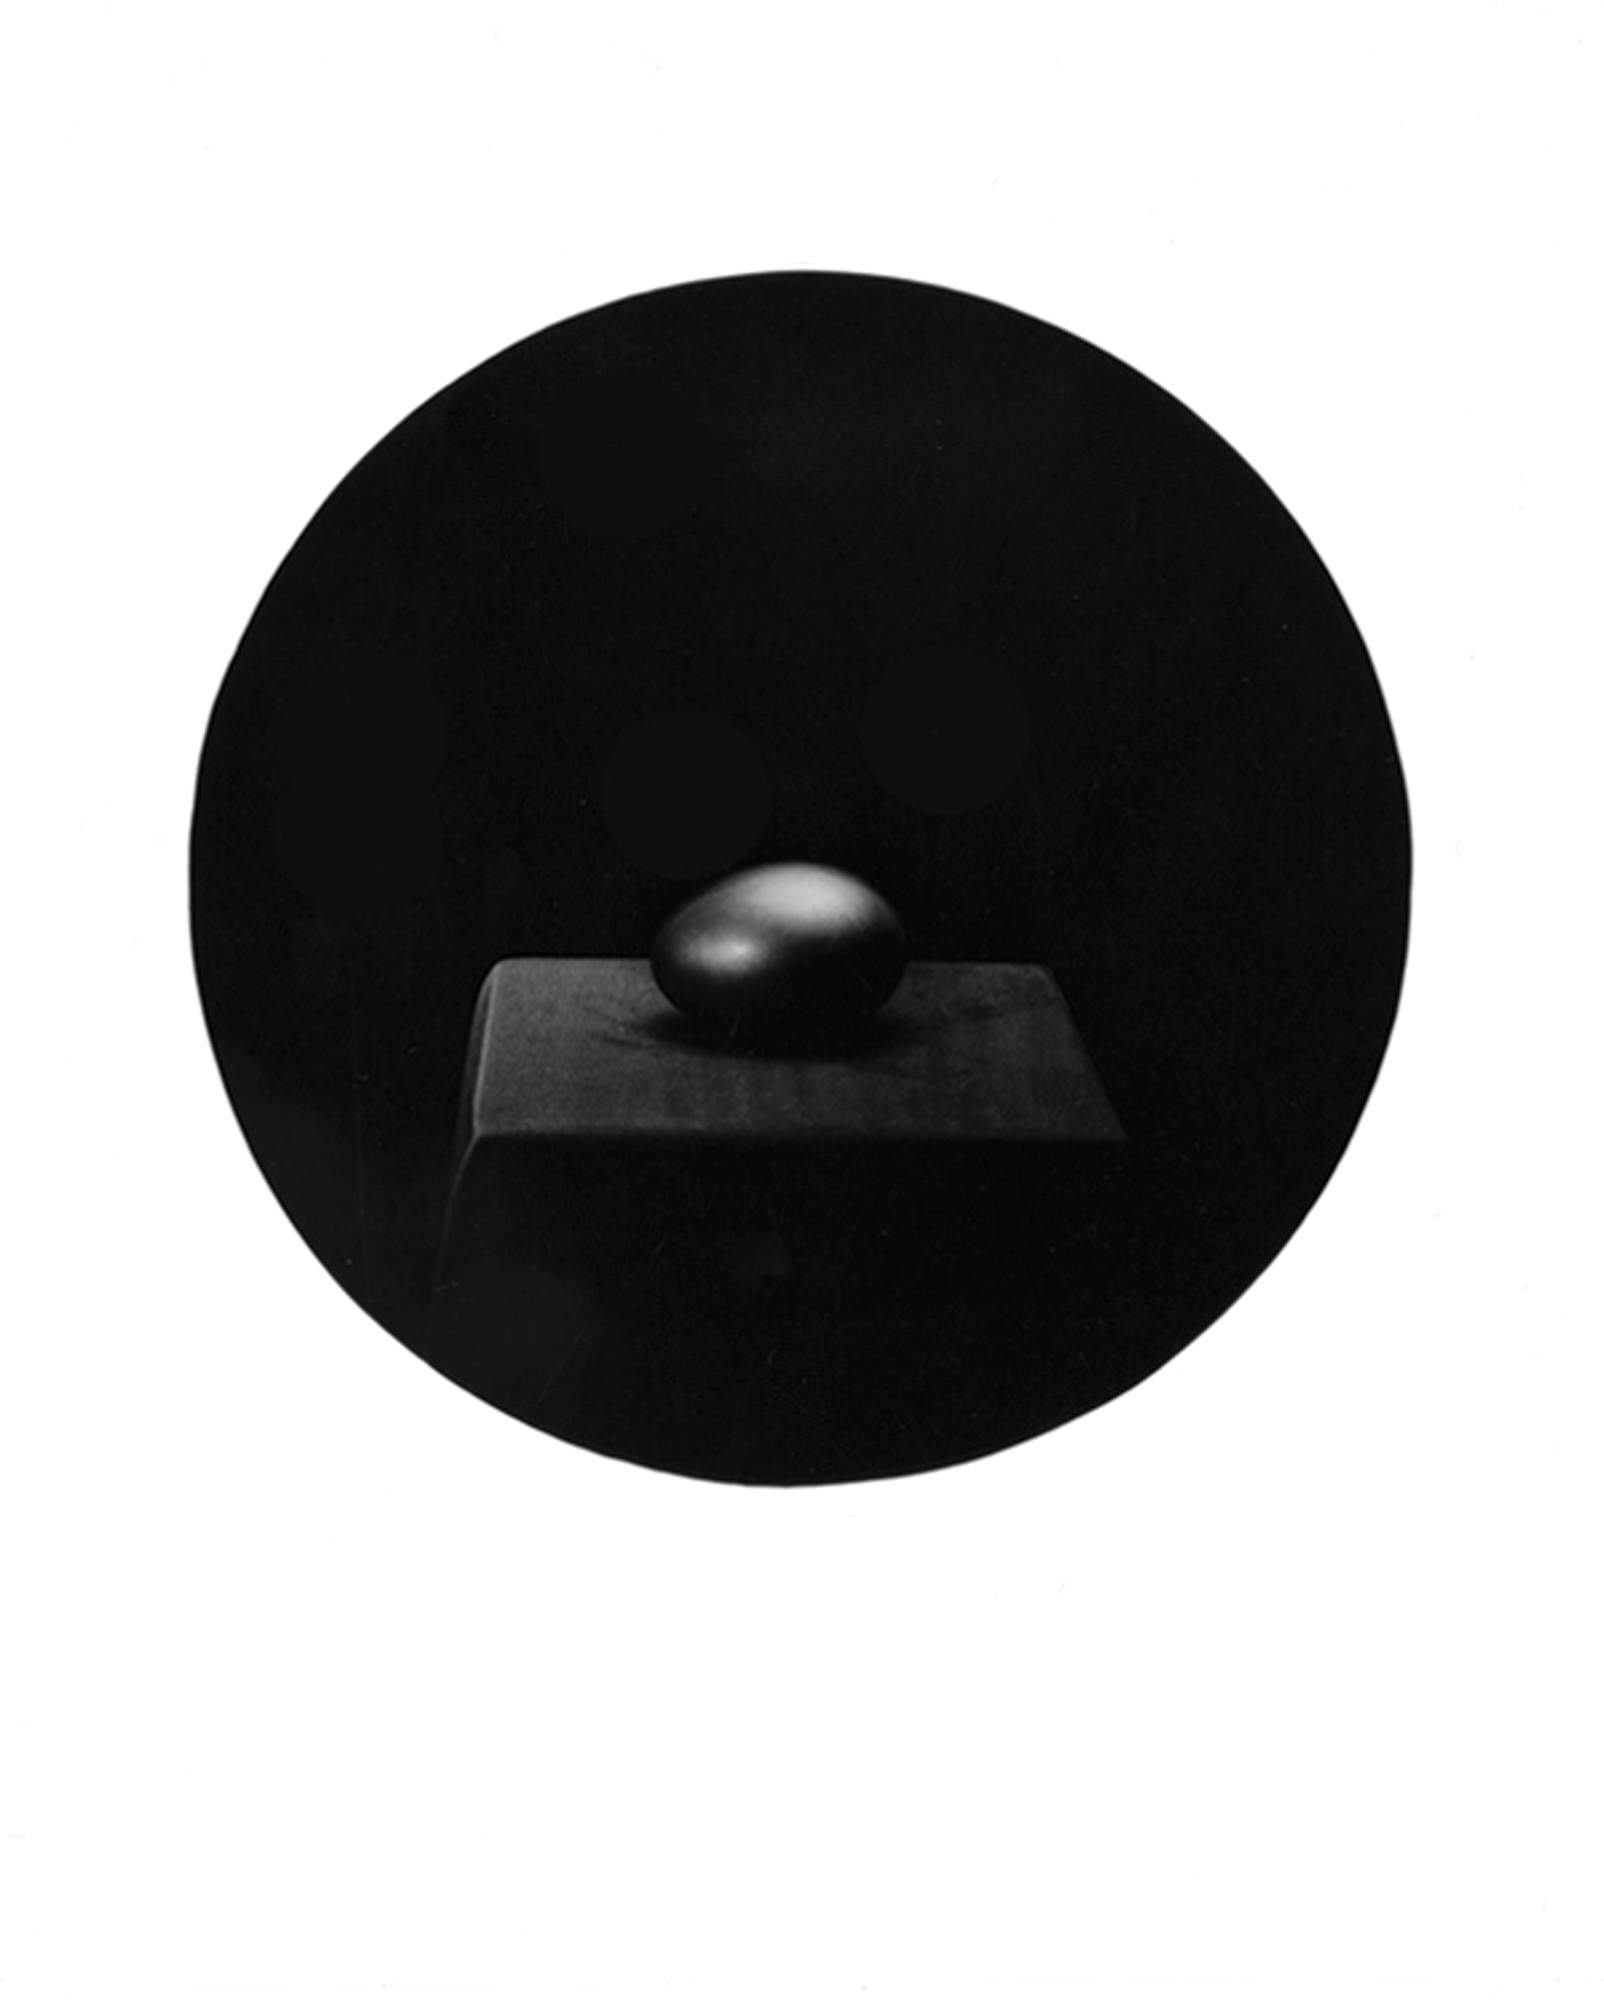 J John Priola, Golden Egg, 1993, gelatin-silver print, 23 1/2 x 20 1/2 inches framed, from the series Paradise